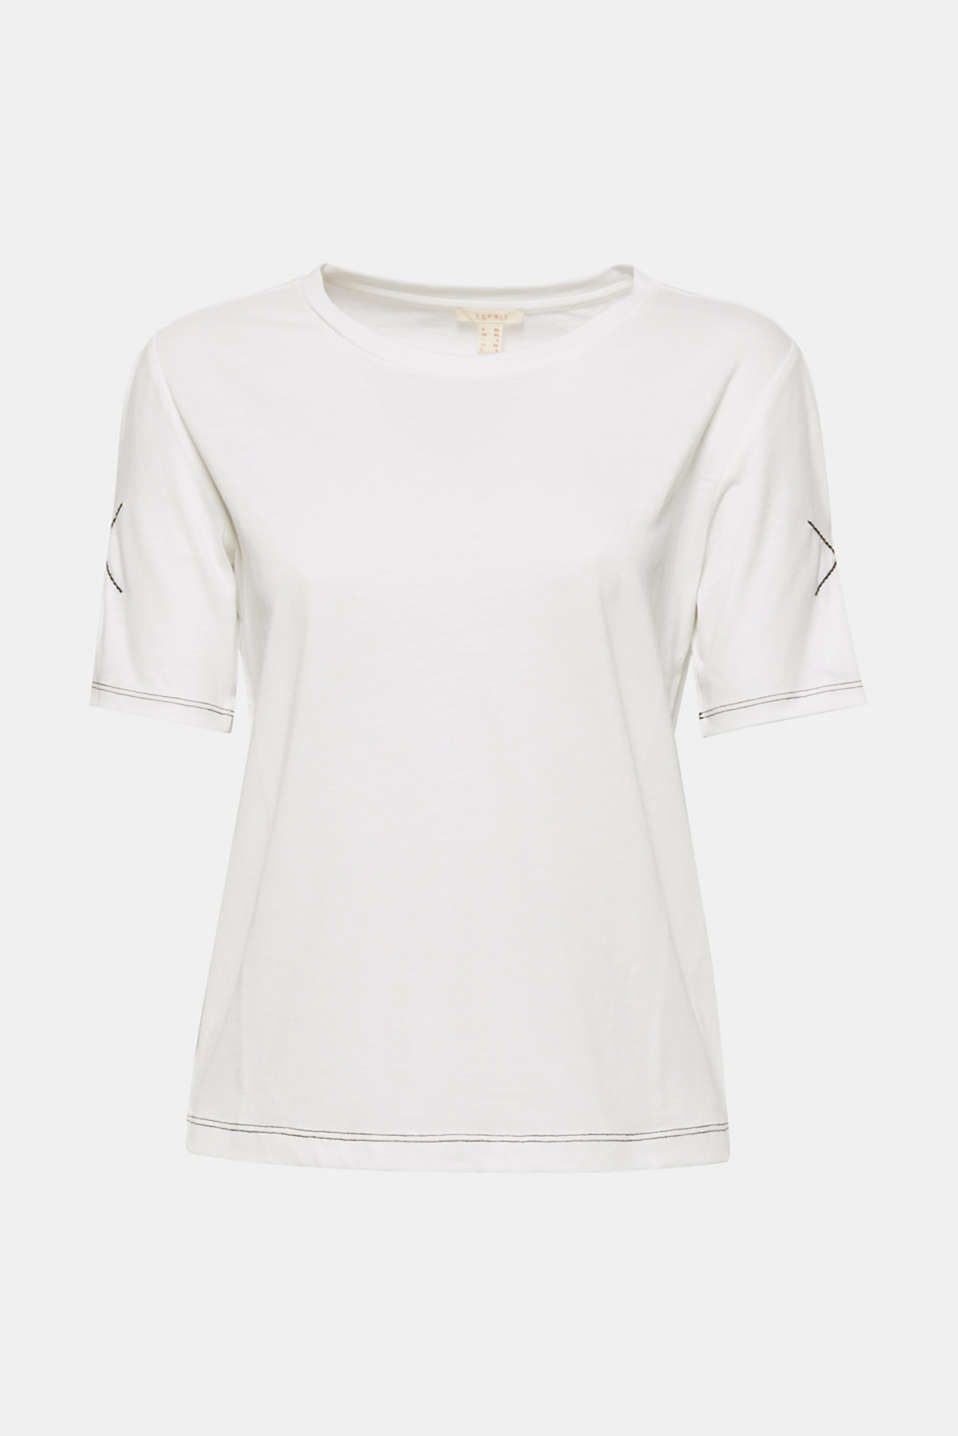 This silky T-shirt with contrasting colour stitching is so versatile and will surprise you with its beautiful details